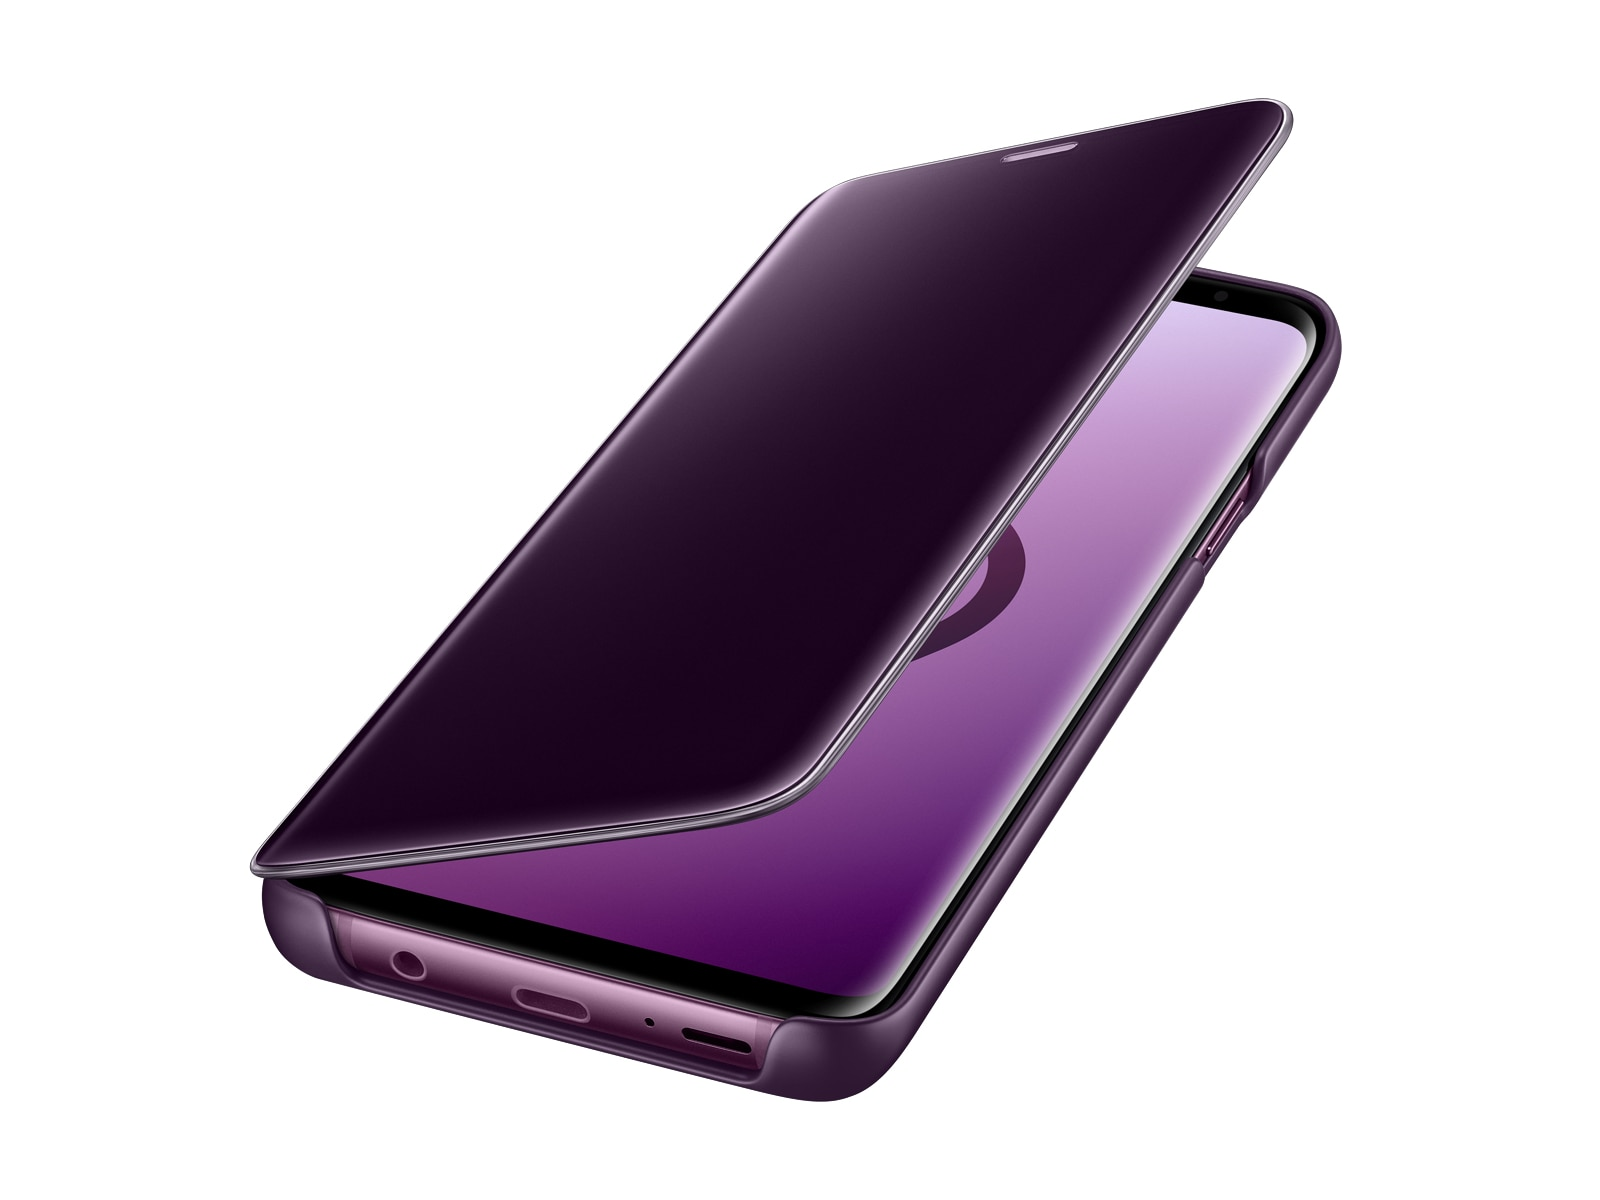 Thumbnail image of Galaxy S9+ S-View Cover, Violet